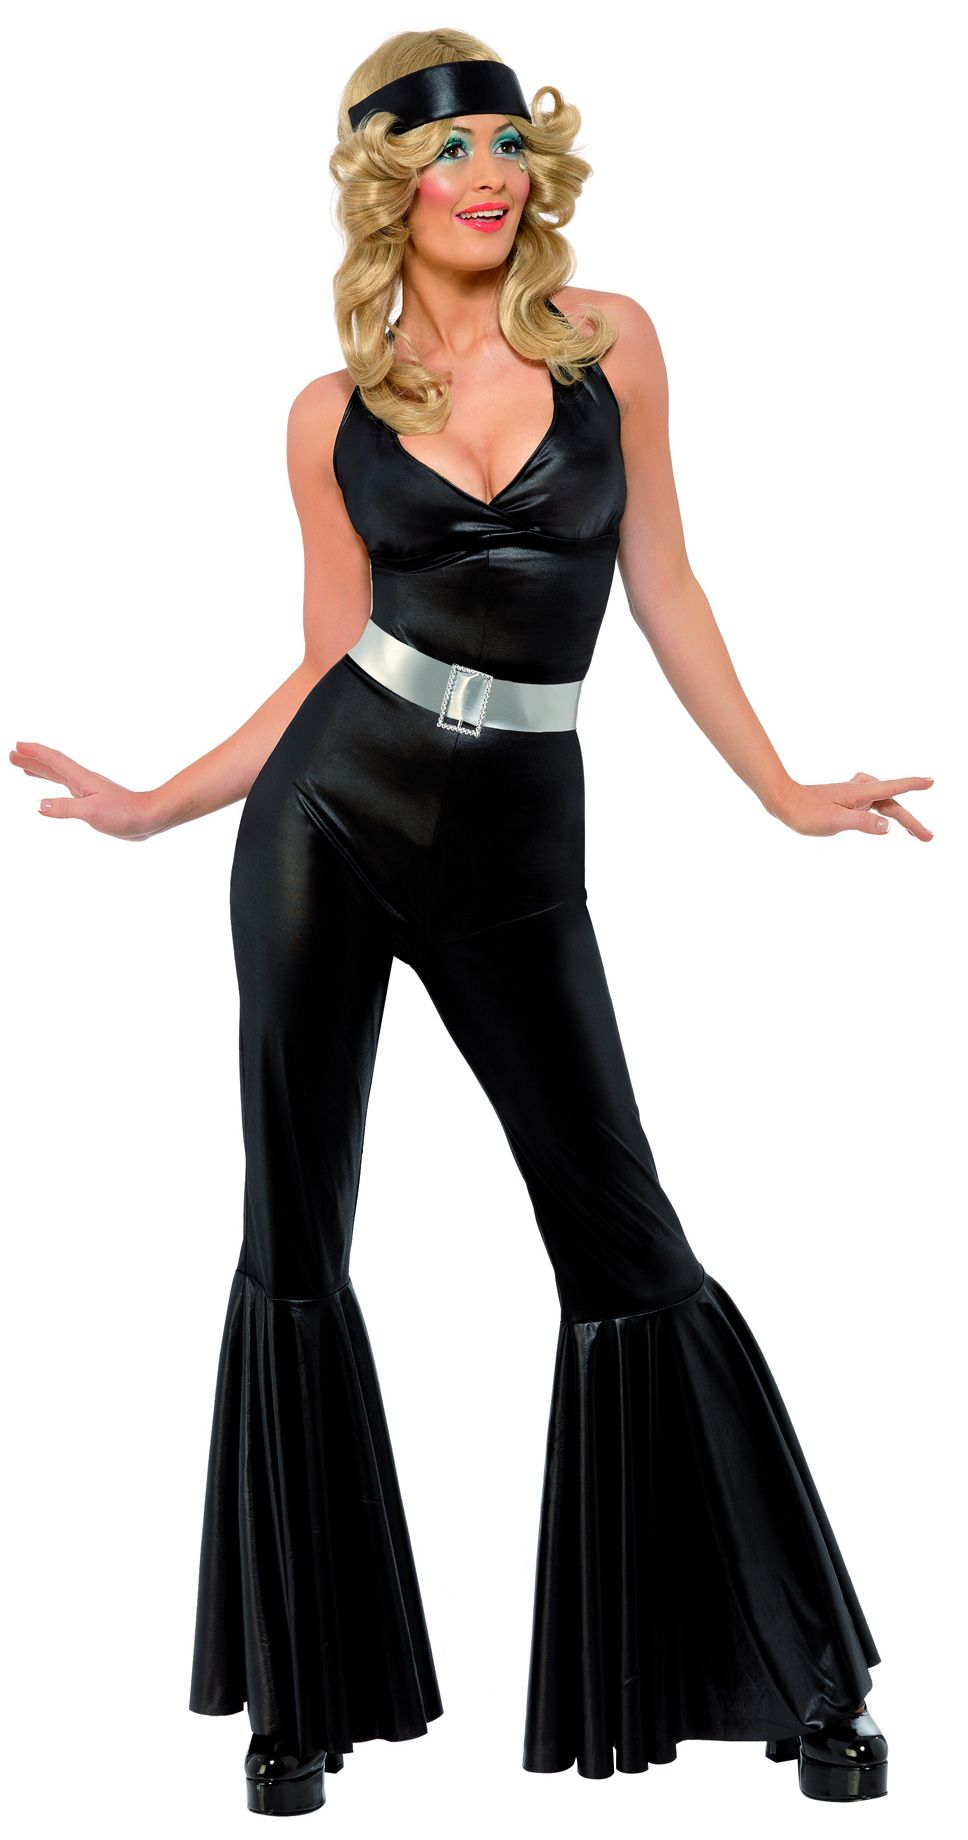 a9157b5b0c5 Disco Costumes For Women - Bing Images | costume ideas | Disco ...